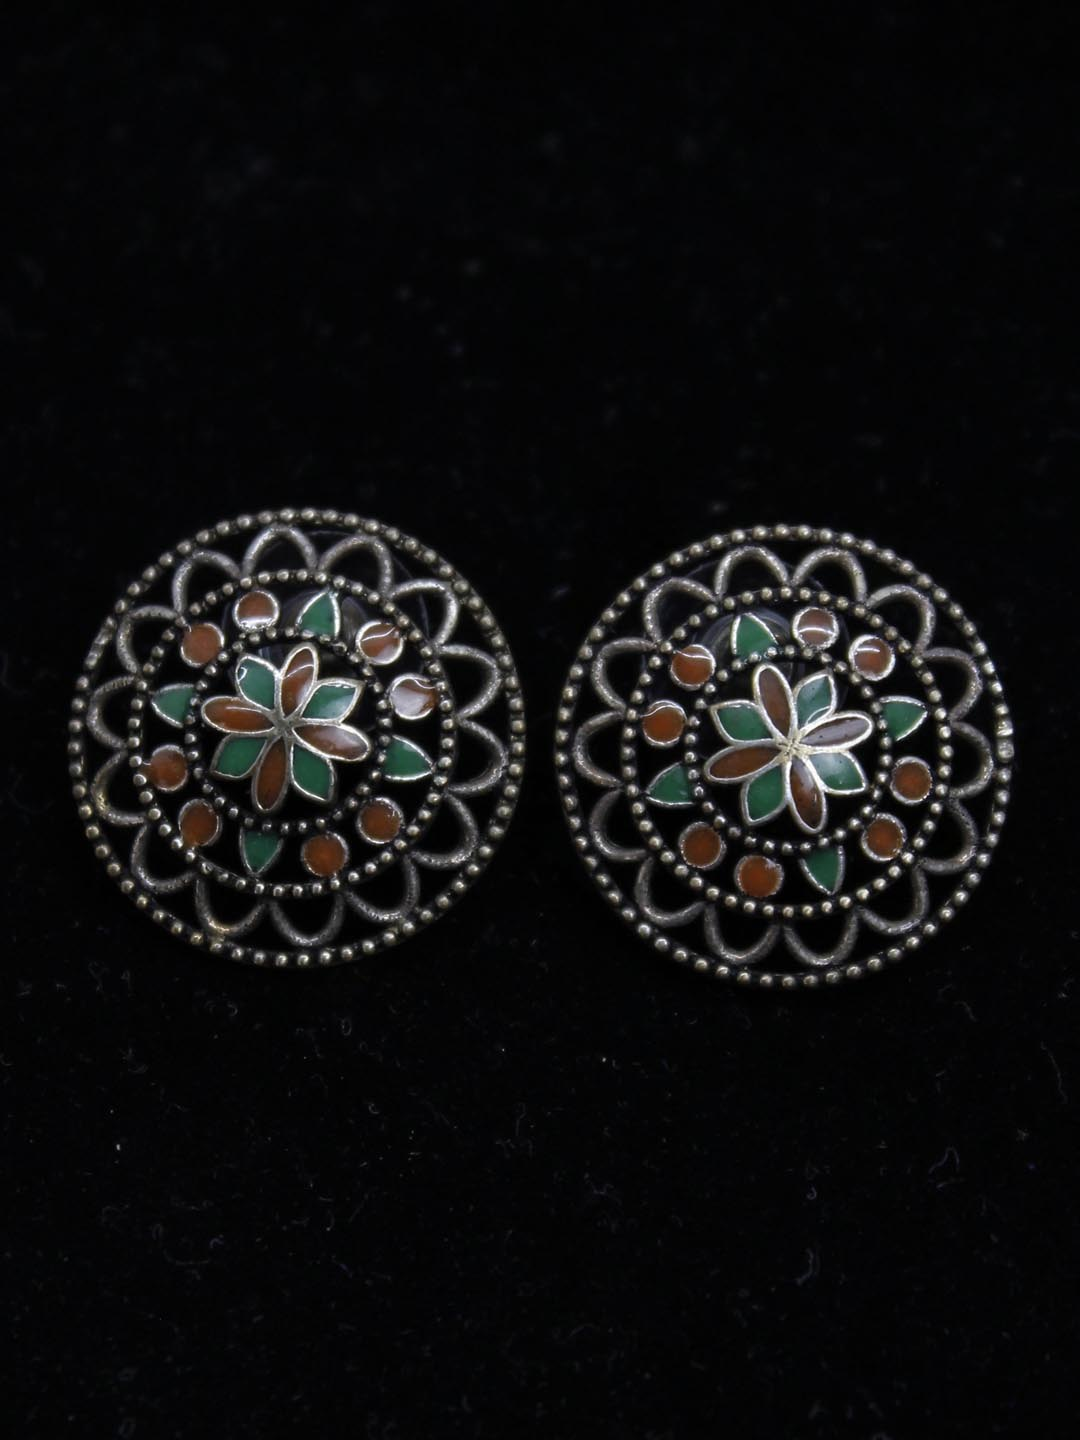 Silver Plated Geometric Design Stud Earring-OXIDIZED1-Earring